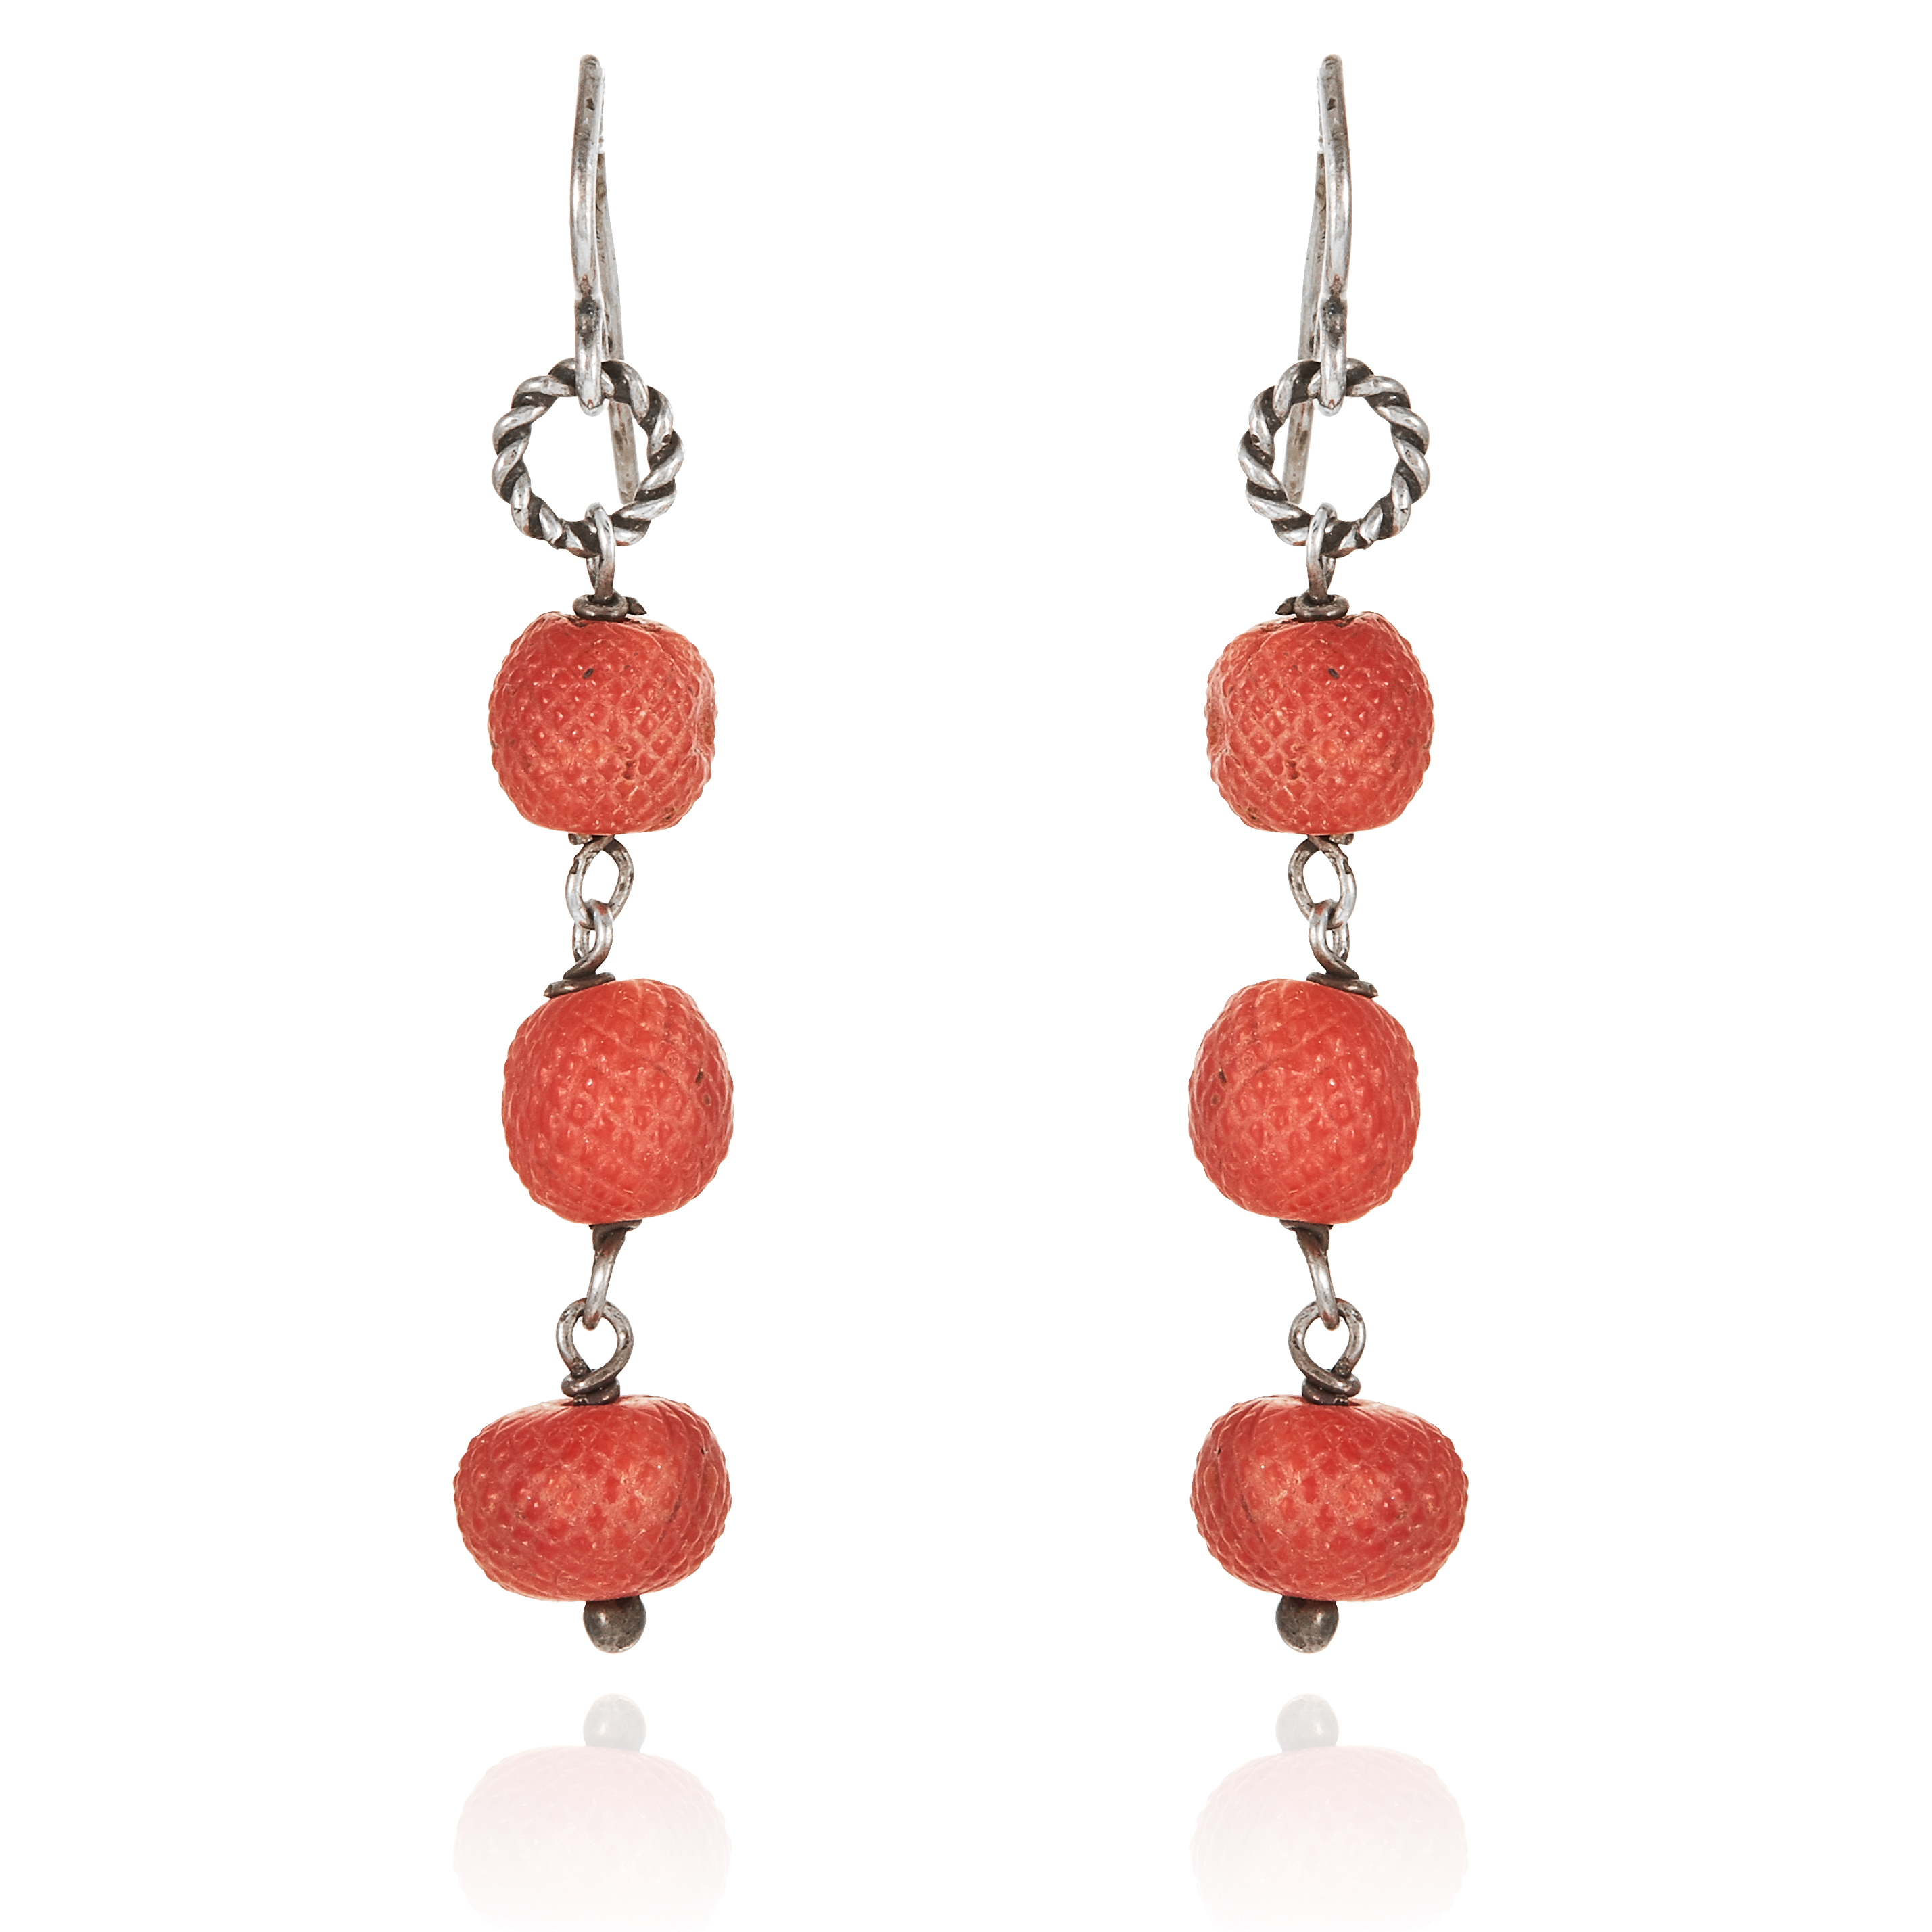 A PAIR OF ANTIQUE CARVED CORAL BEAD EARRINGS in sterling silver, each jewelled with three carved